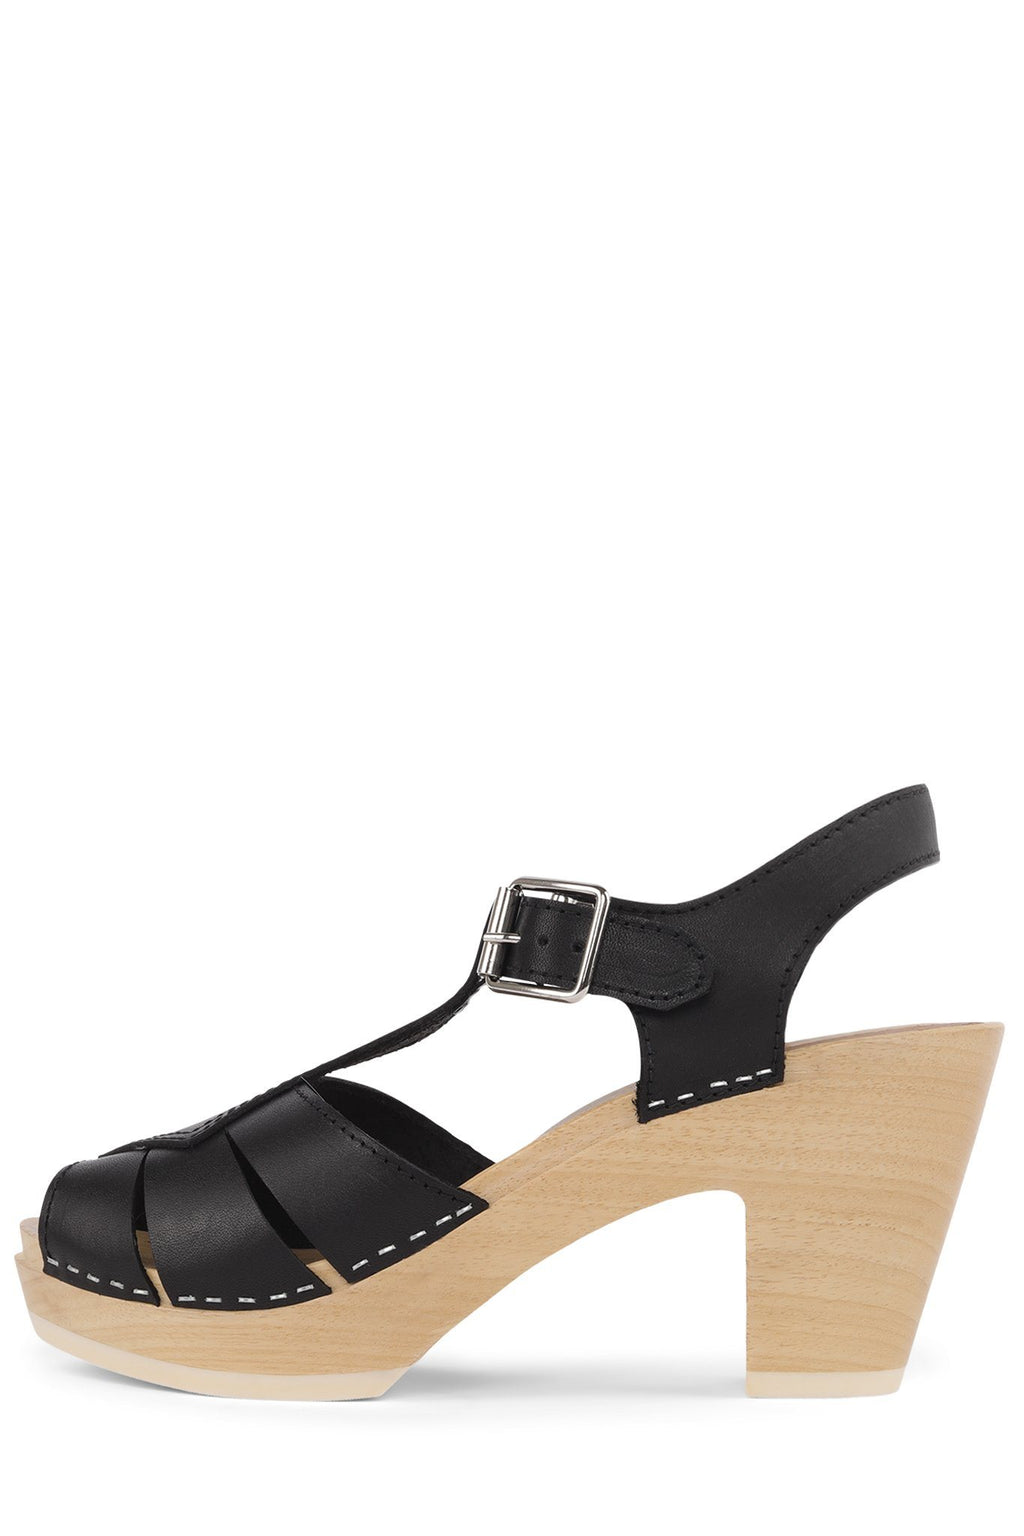 DONOSTIA Heeled Sandal Jeffrey Campbell Black 35